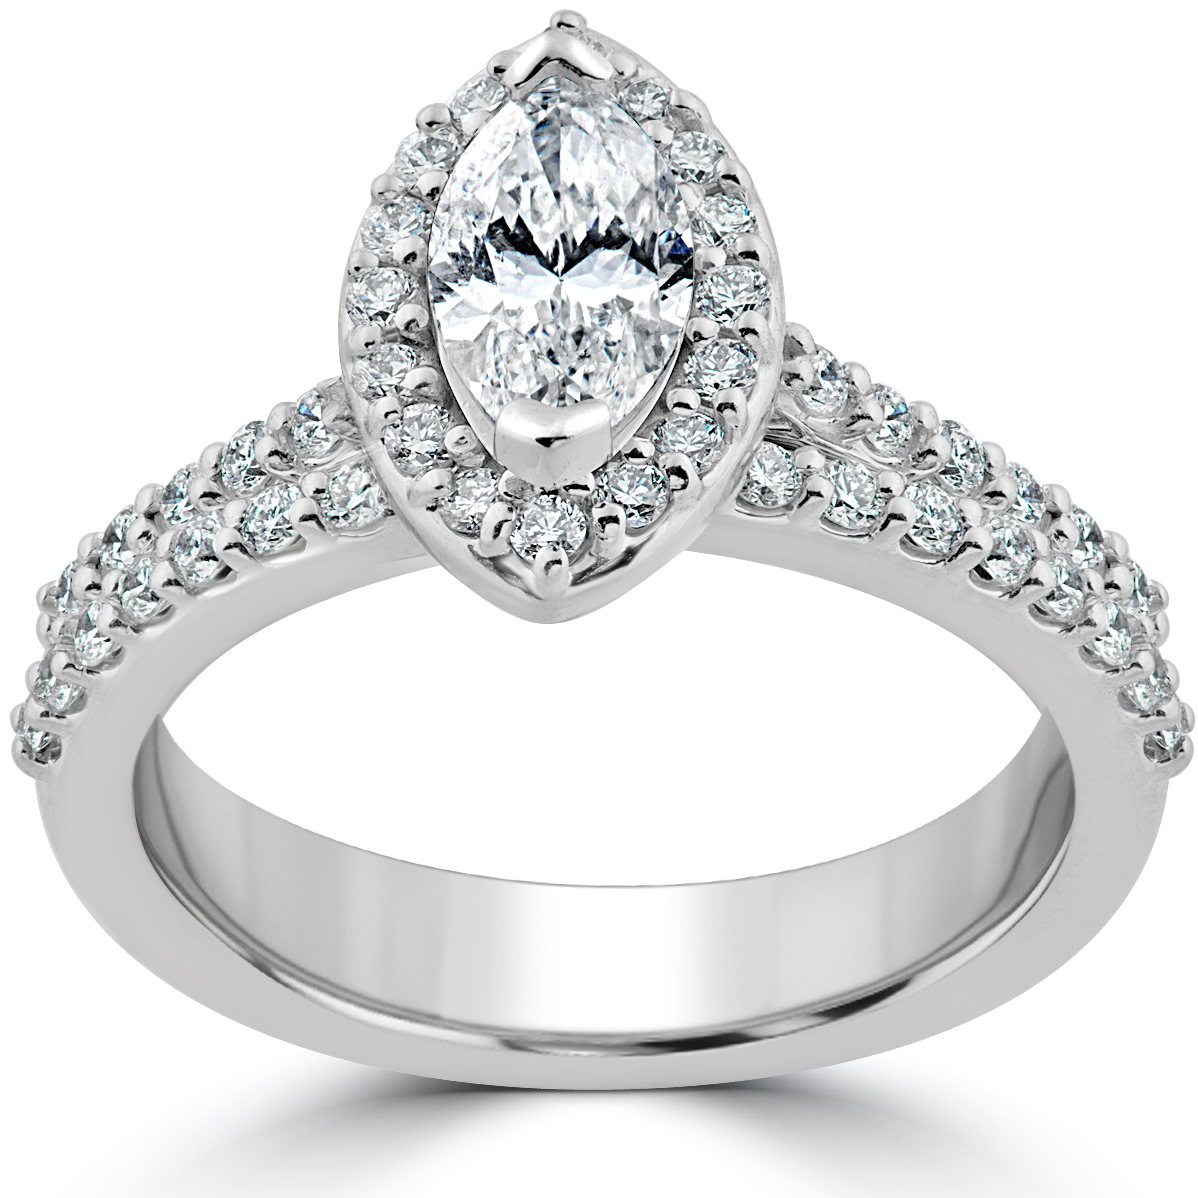 1 1 2ct marquise halo diamond engagement wedding ring set. Black Bedroom Furniture Sets. Home Design Ideas